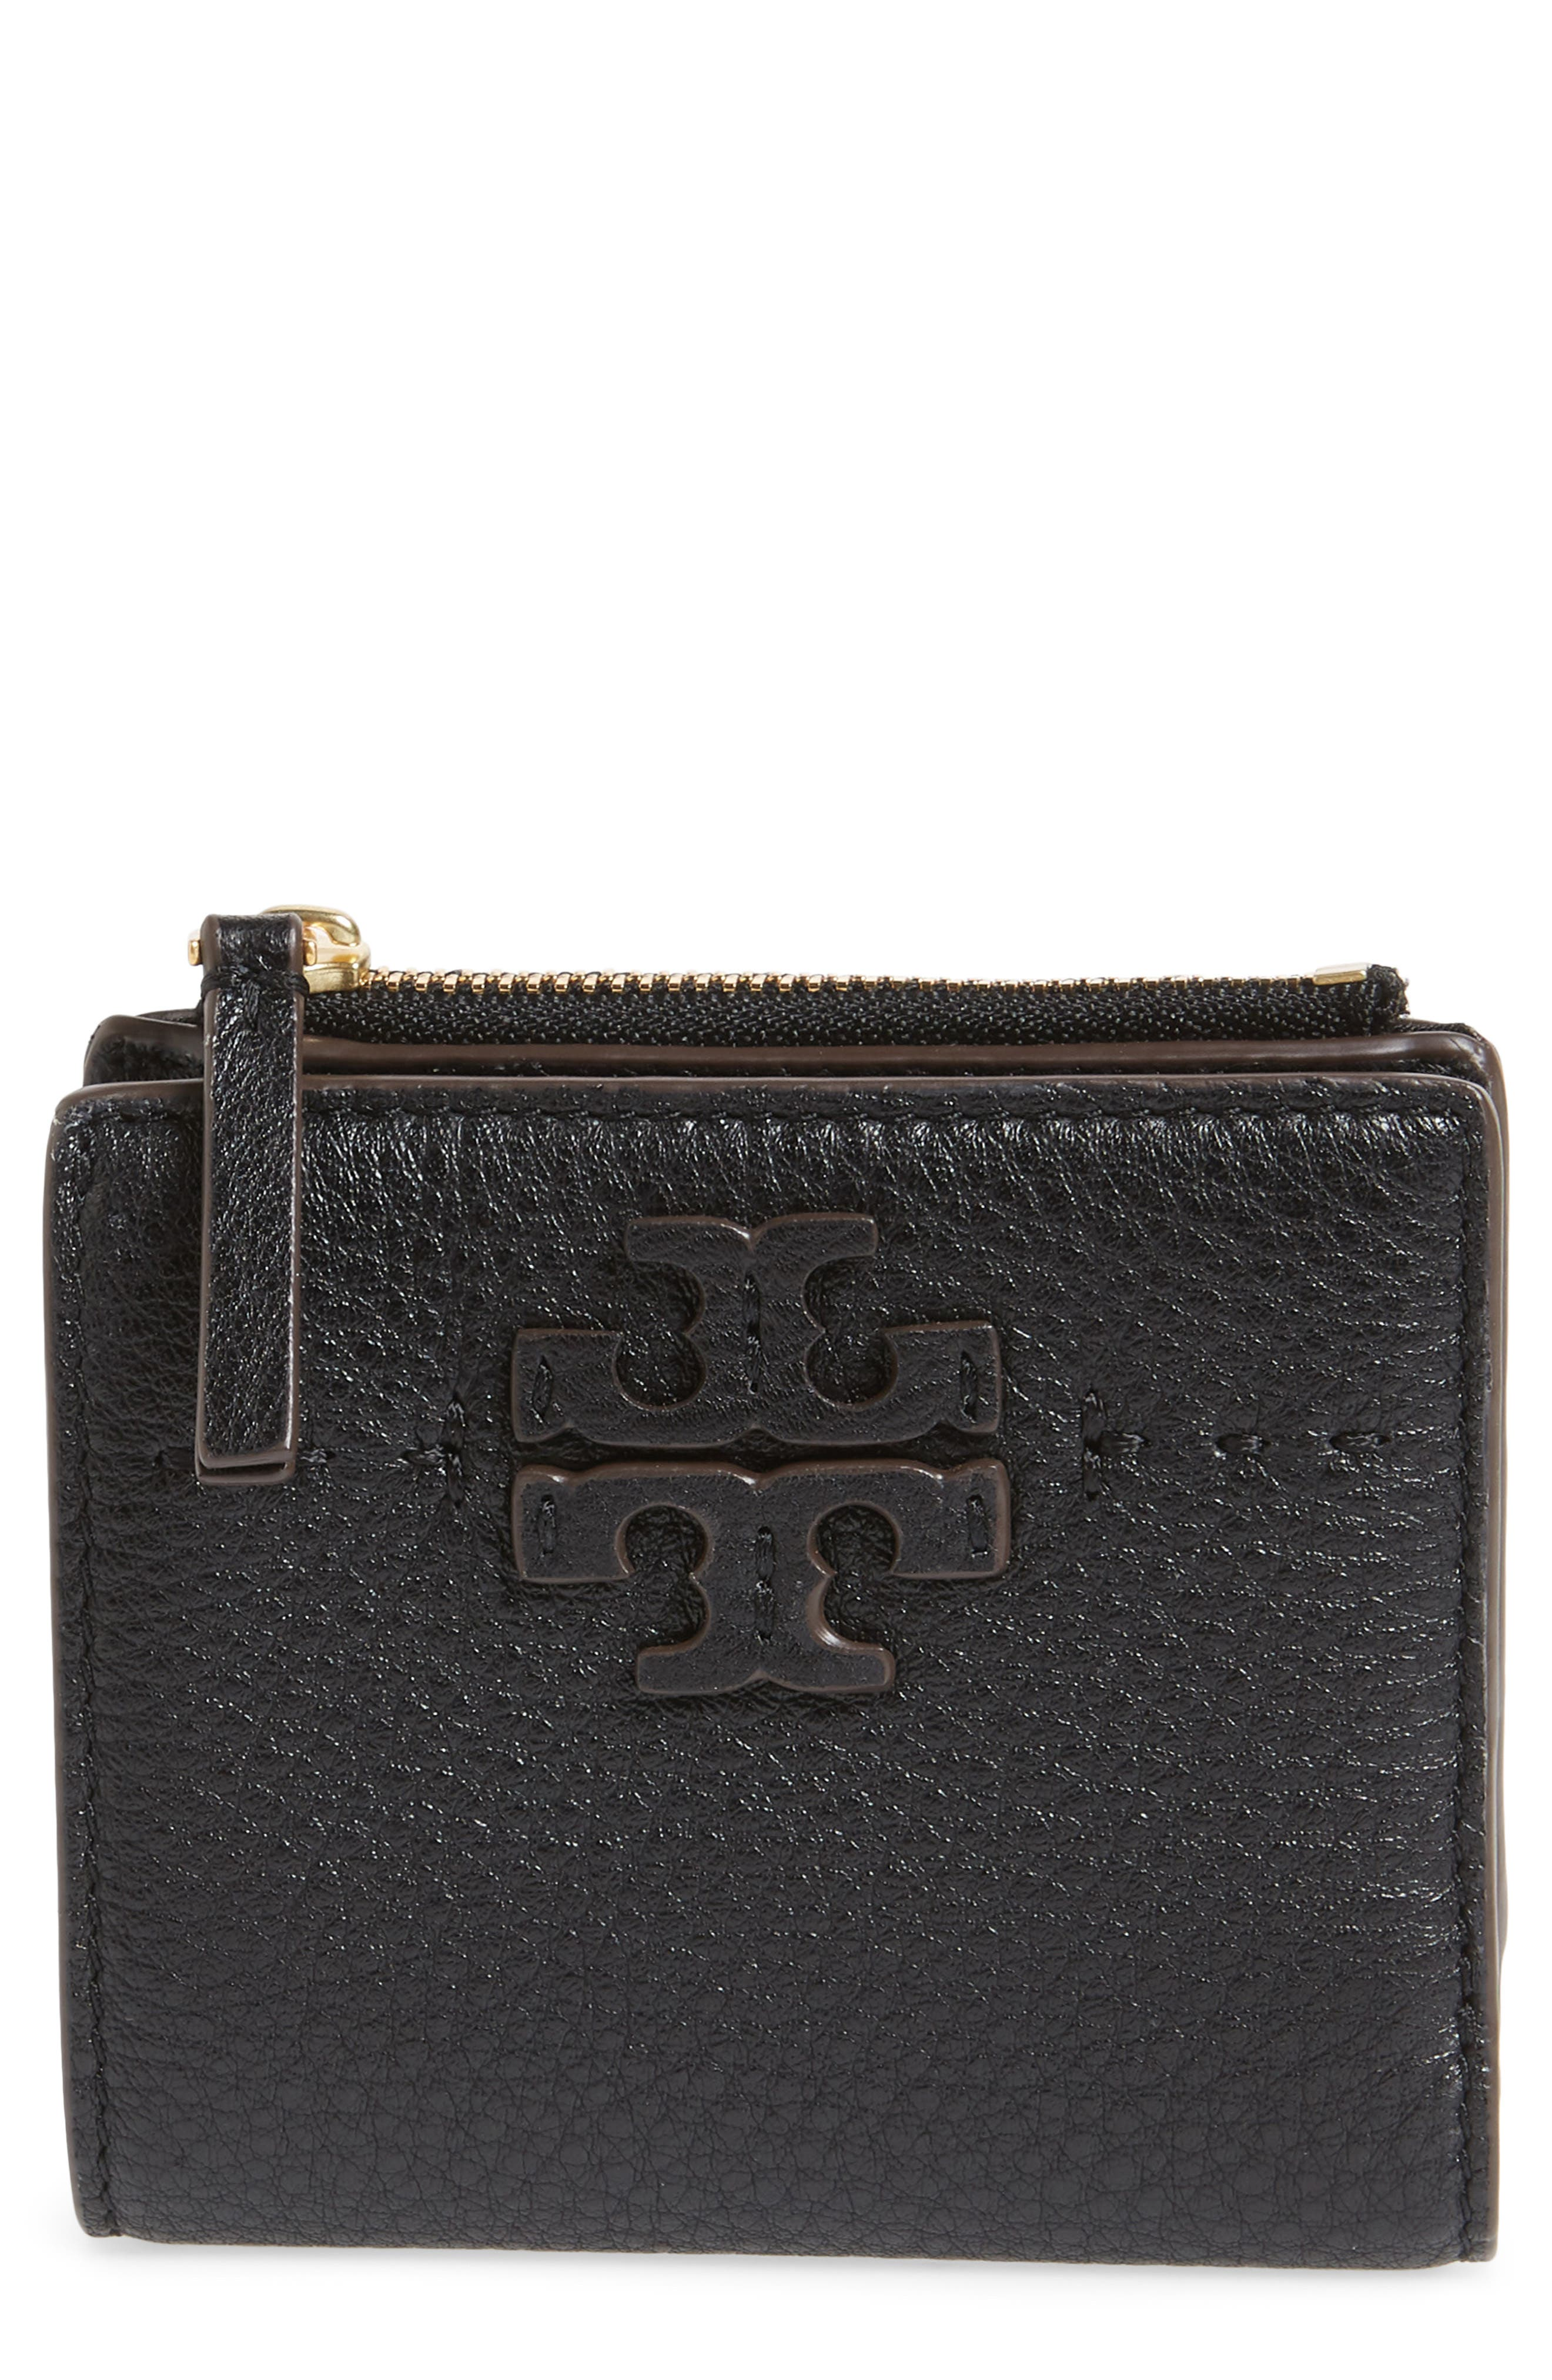 TORY BURCH,                             McGraw Leather Bifold Wallet,                             Main thumbnail 1, color,                             001